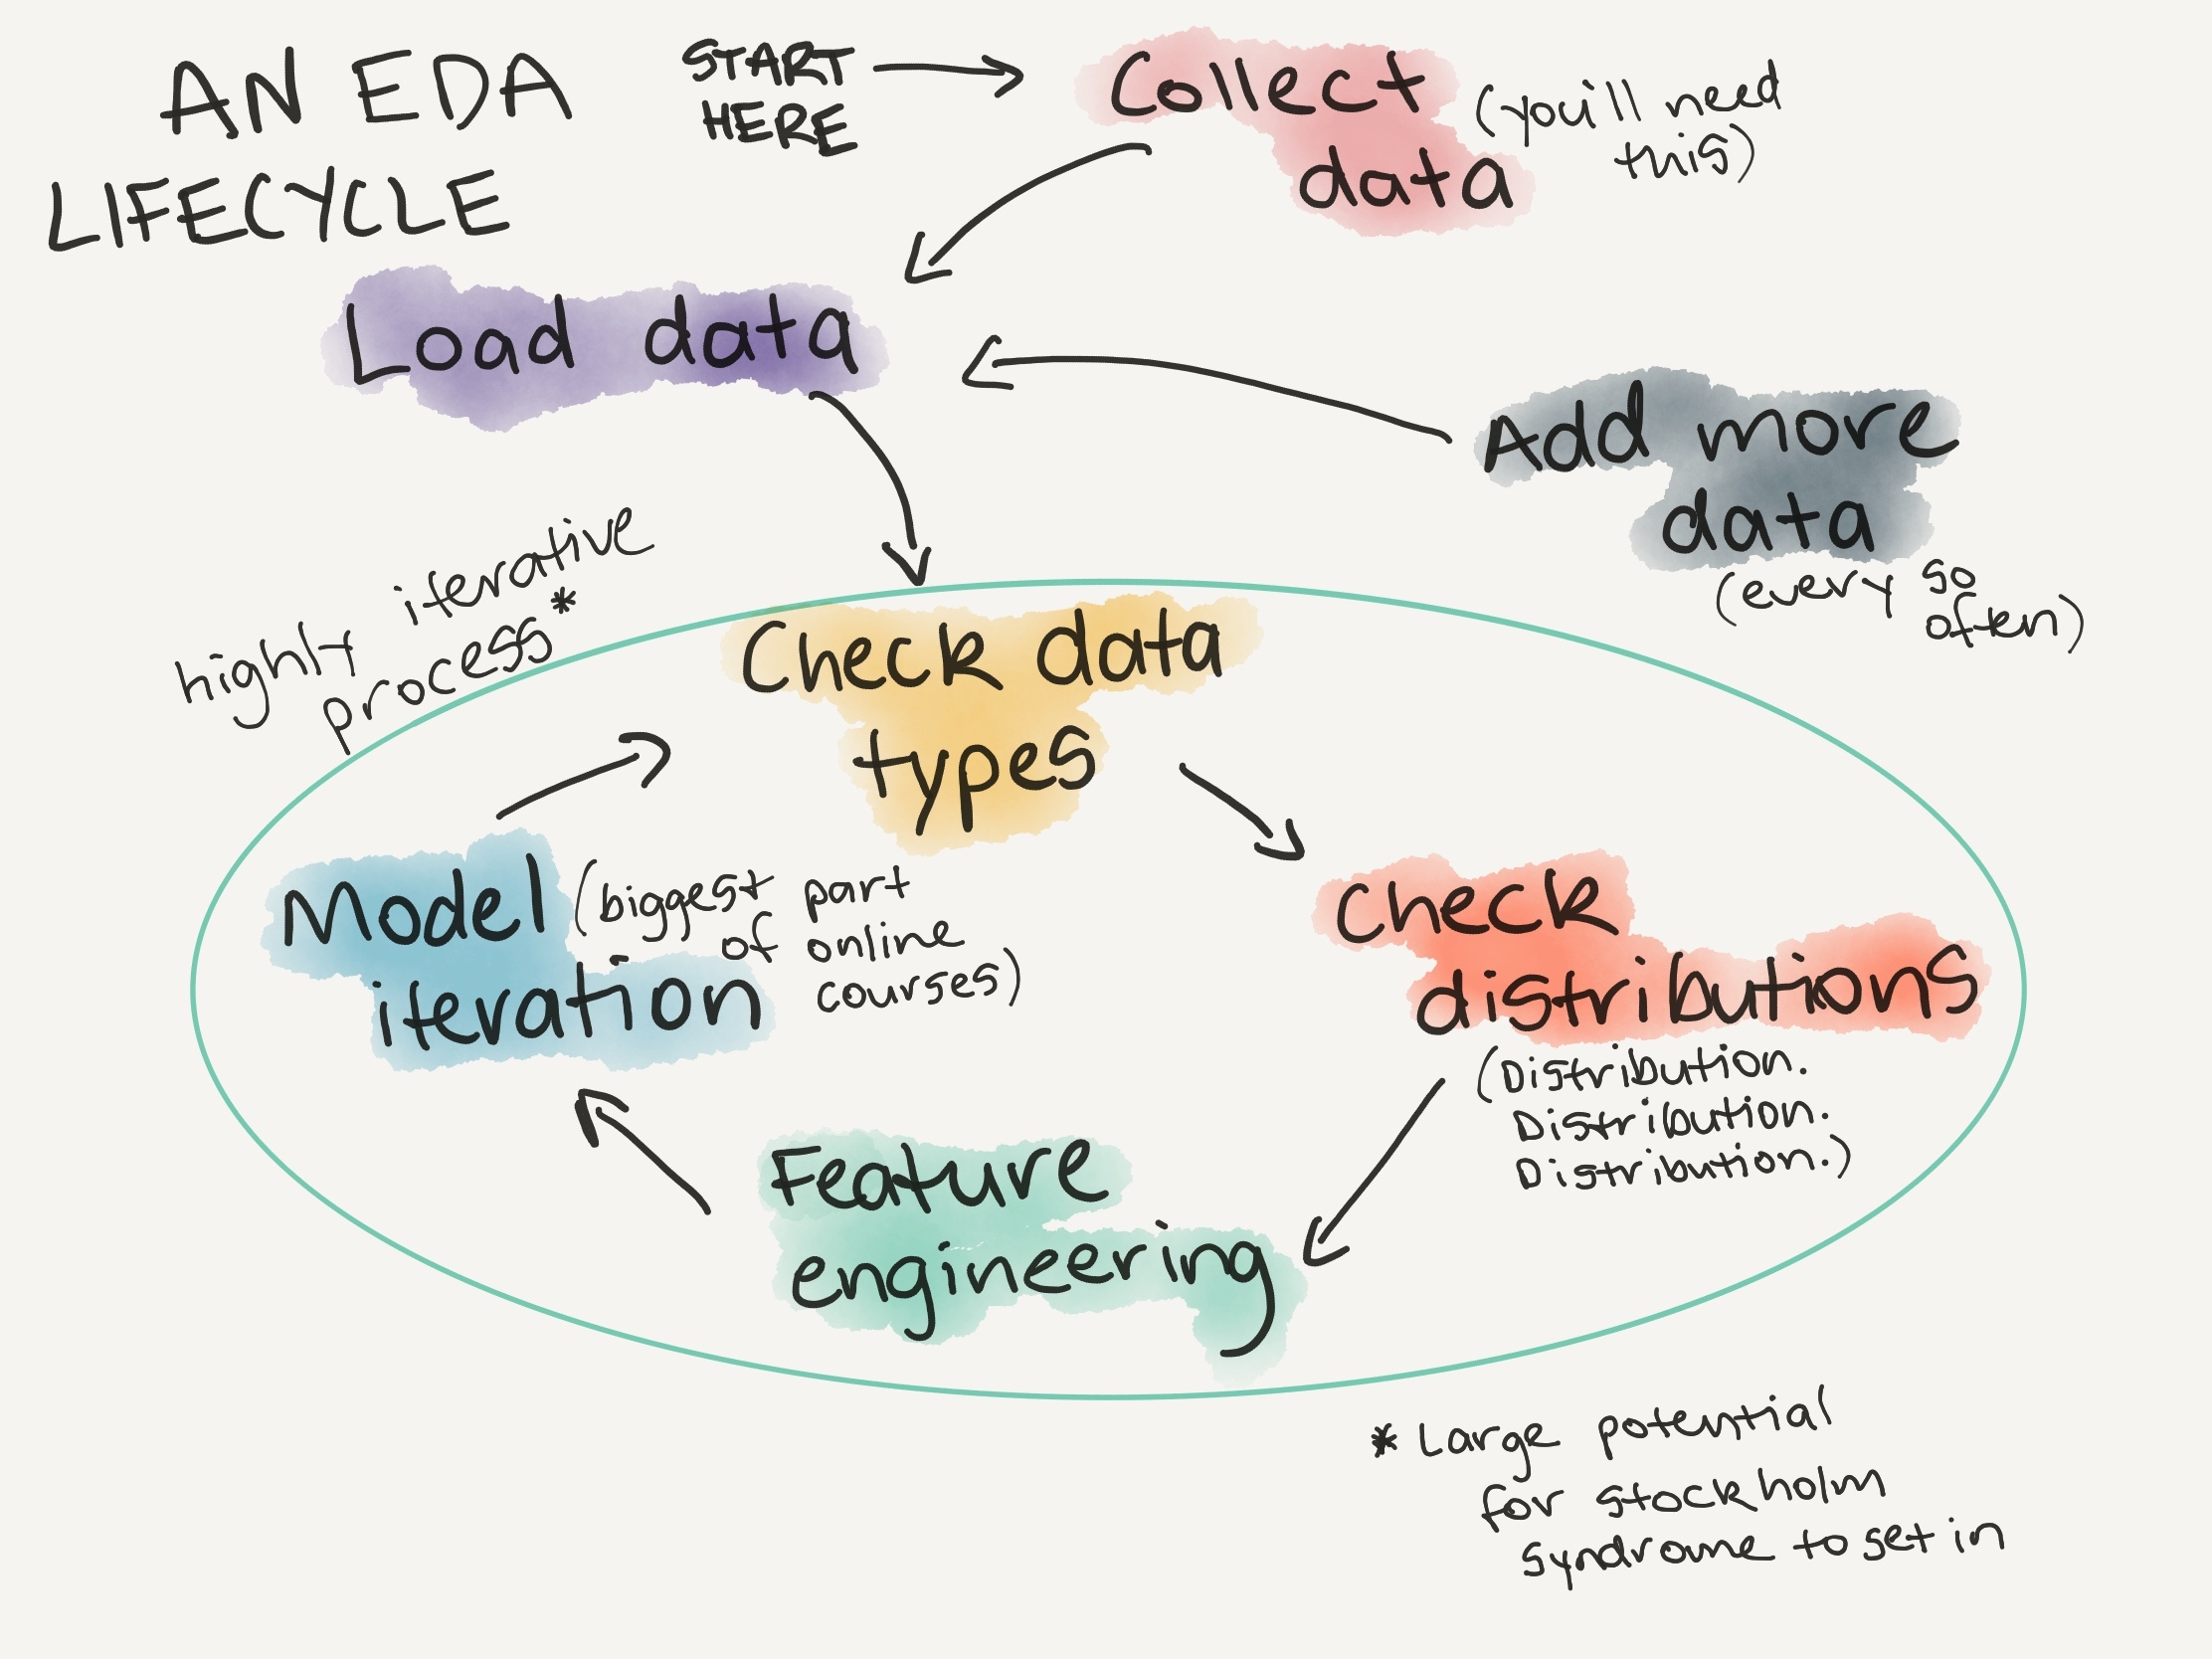 An example exploratory data analysis lifecycle (what you'll do every time you encounter a new dataset). More on this in  A Gentle Introduction to Exploratory Data Analysis .